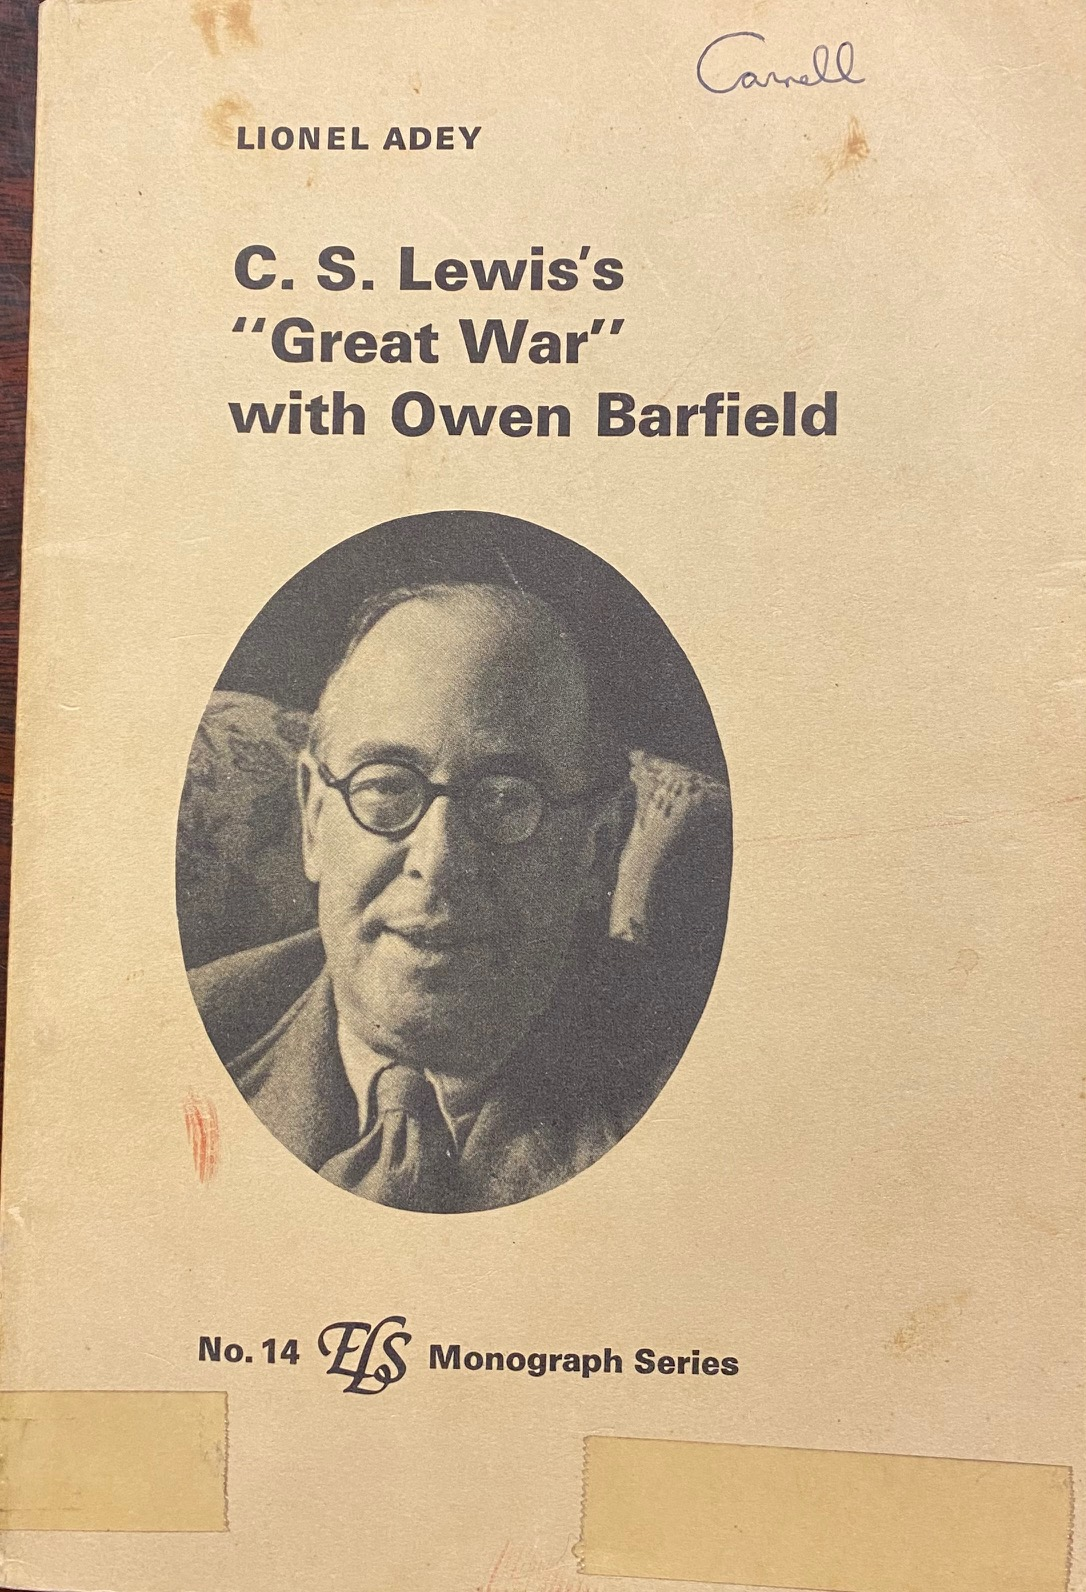 Image for C. S. Lewis's 'Great War' with Owen Barfield (ELS Monograph Series - No. 14)